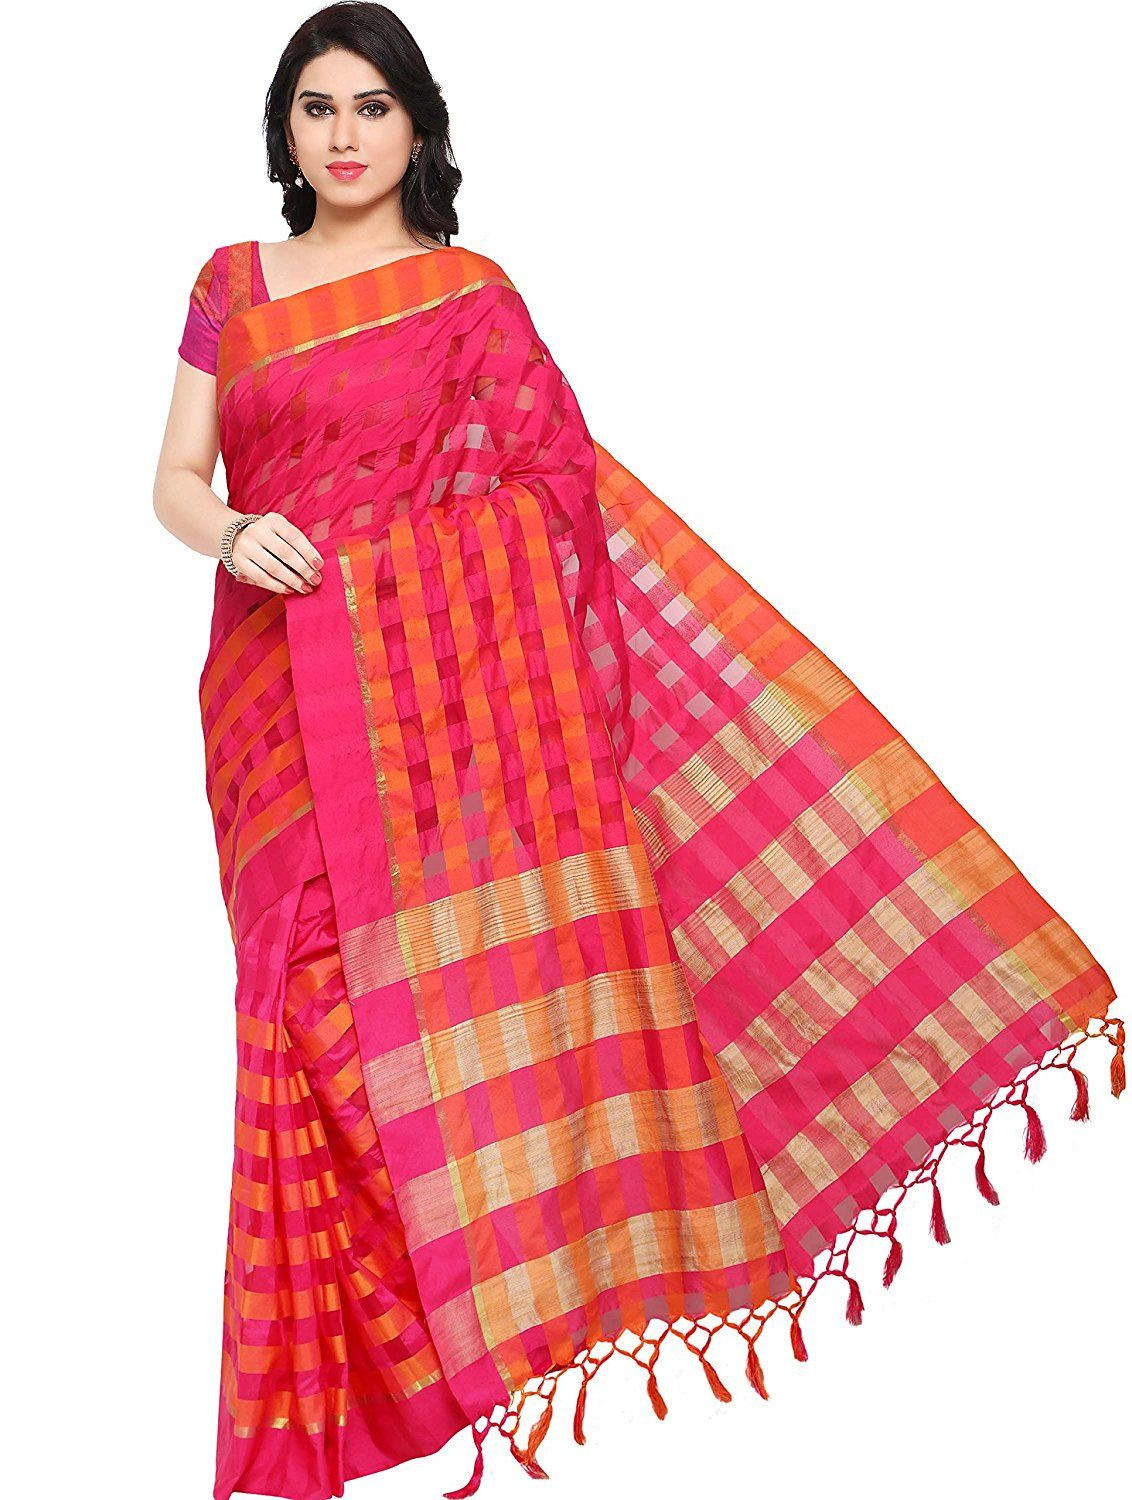 eaecb6d5efe3d2 Ethnicjunction Cotton Silk Saree (Ej1162-106 Pink)  Amazon.in  Clothing    Accessories